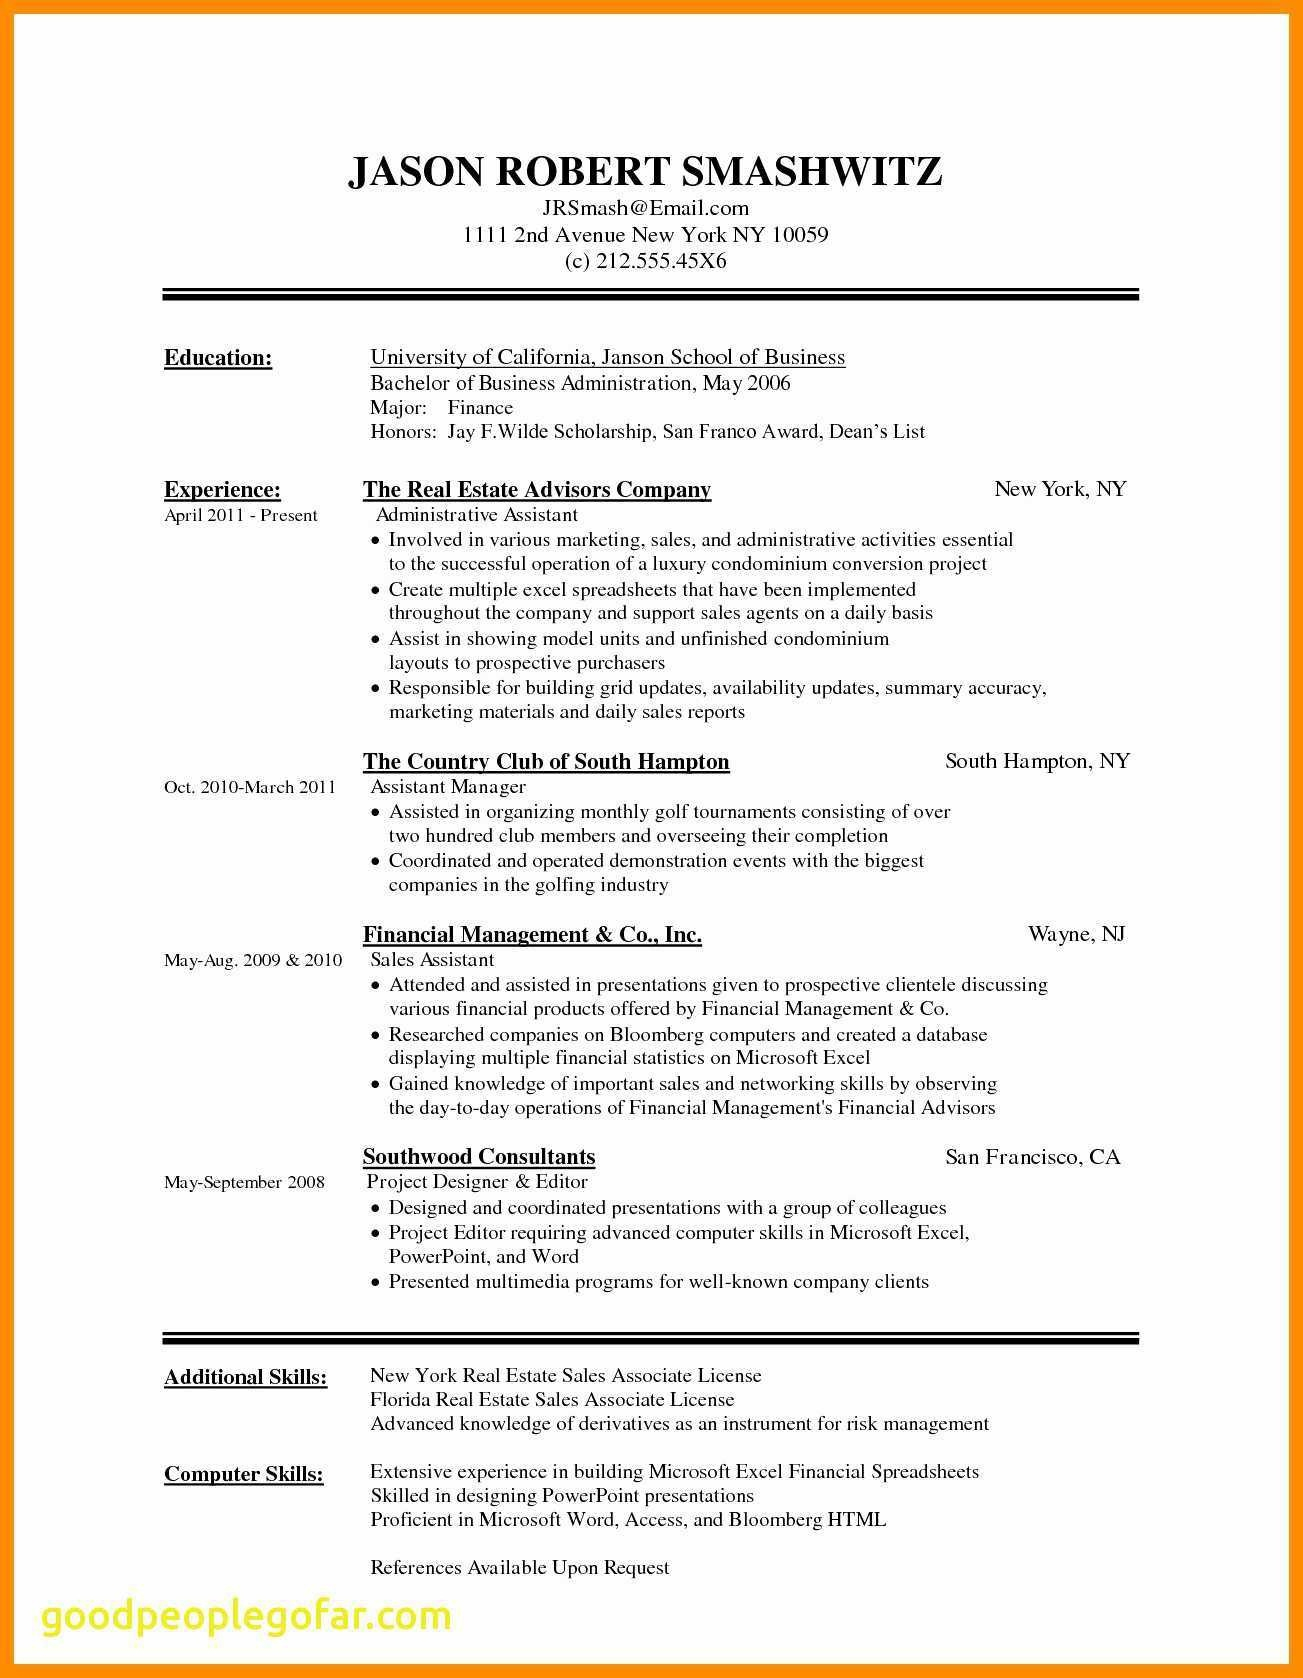 Cosmetology Resume Template - Entry Level Cosmetologist Resume Examples Fresh Resume Templates for